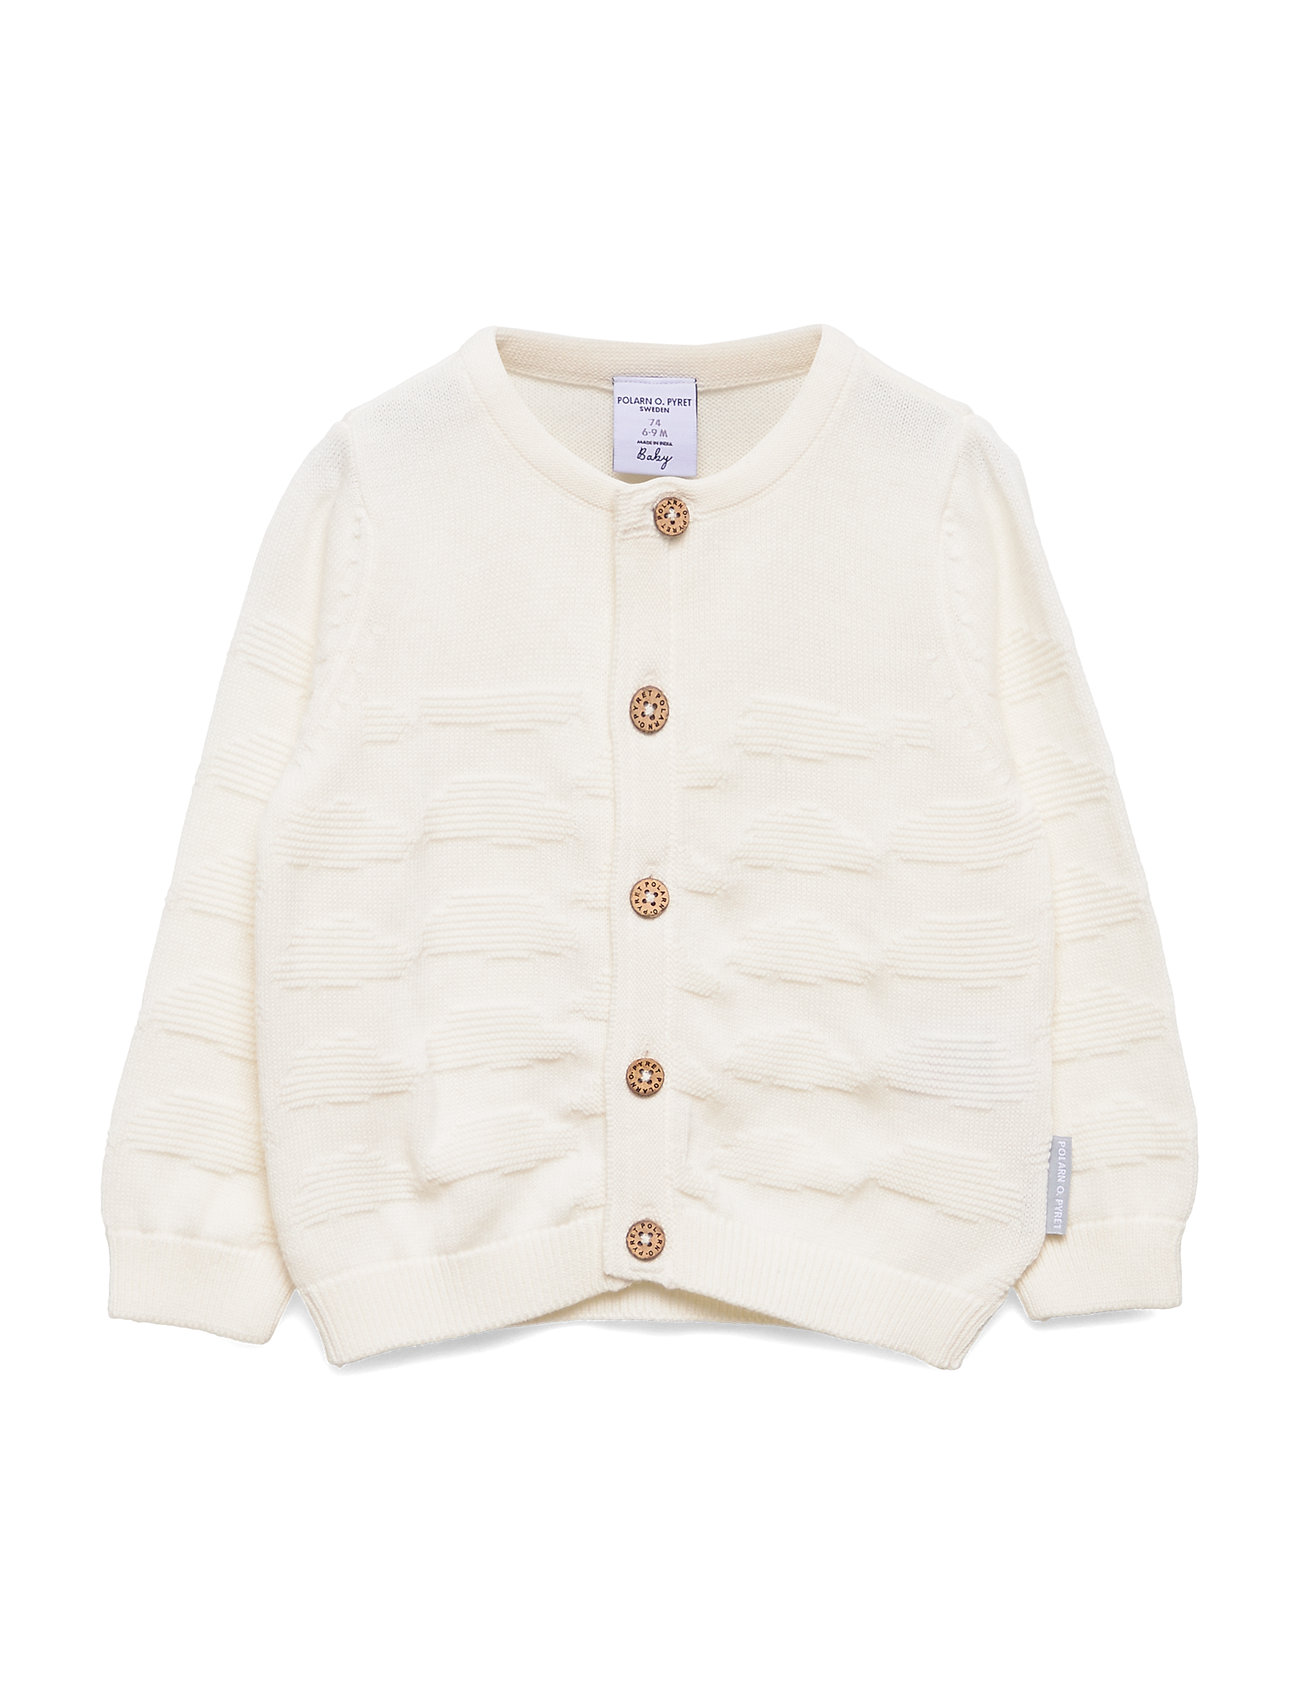 Polarn O. Pyret Top L/S Knitted Baby - SNOW WHITE